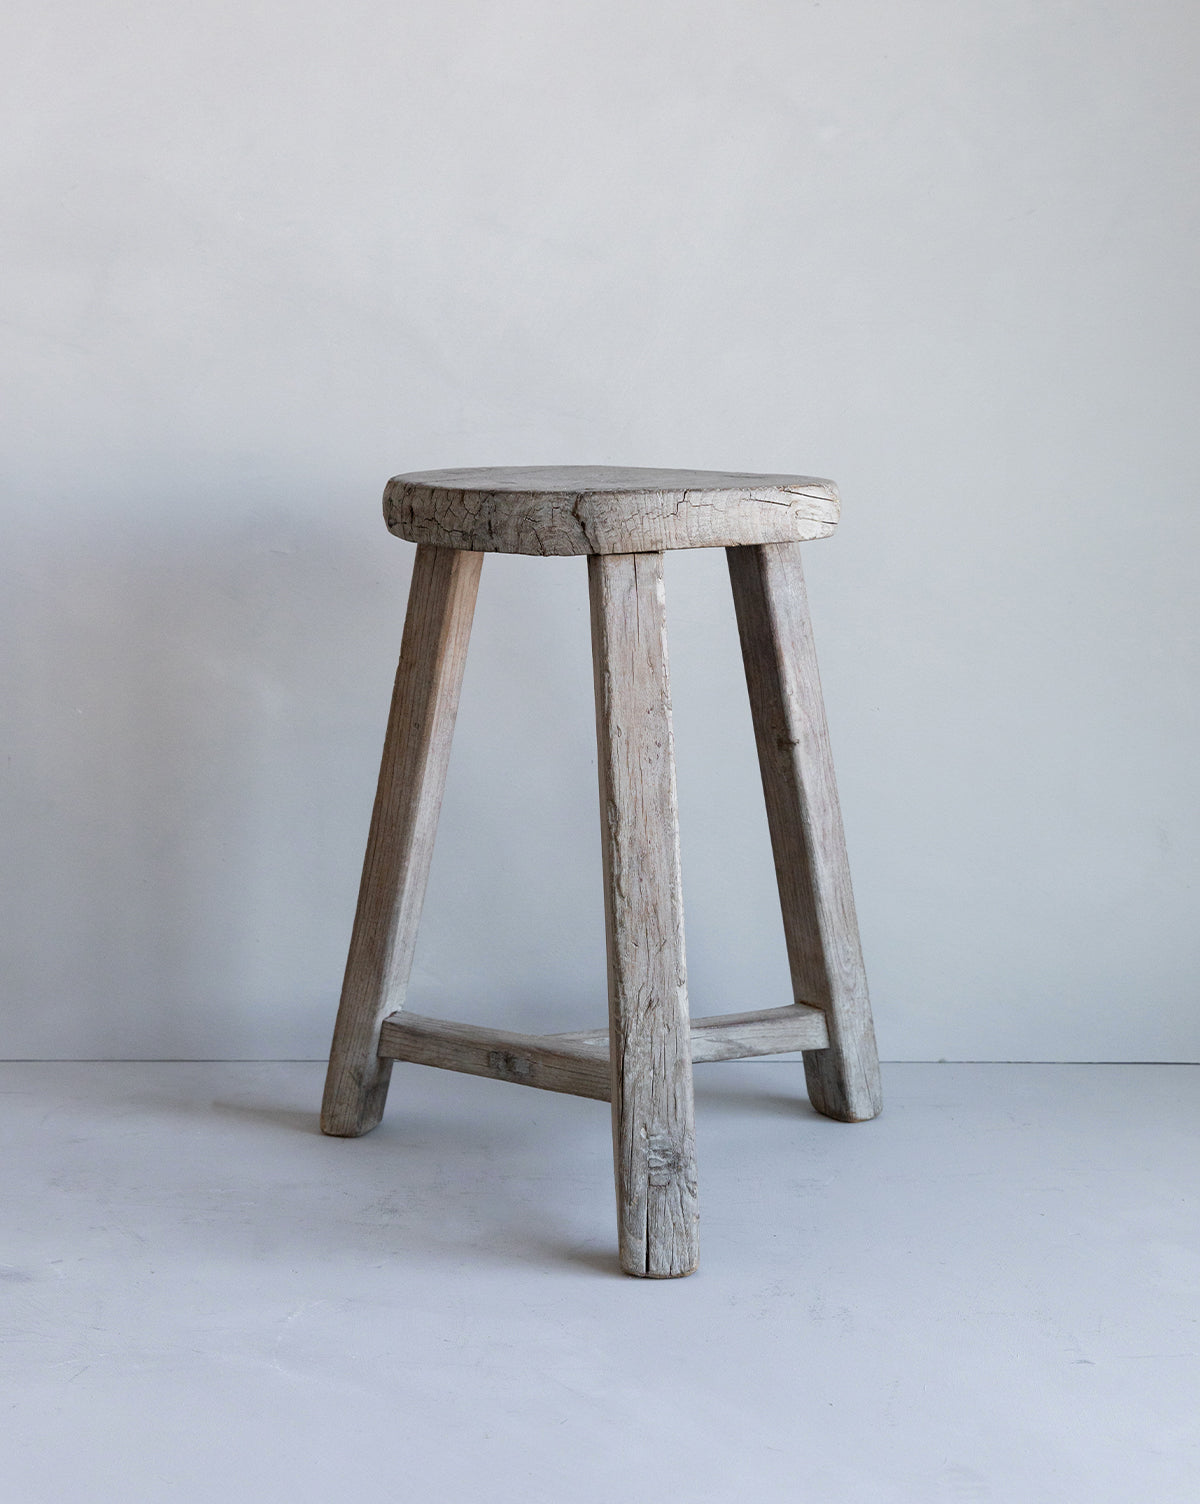 Vintage Tri-Legged Stool